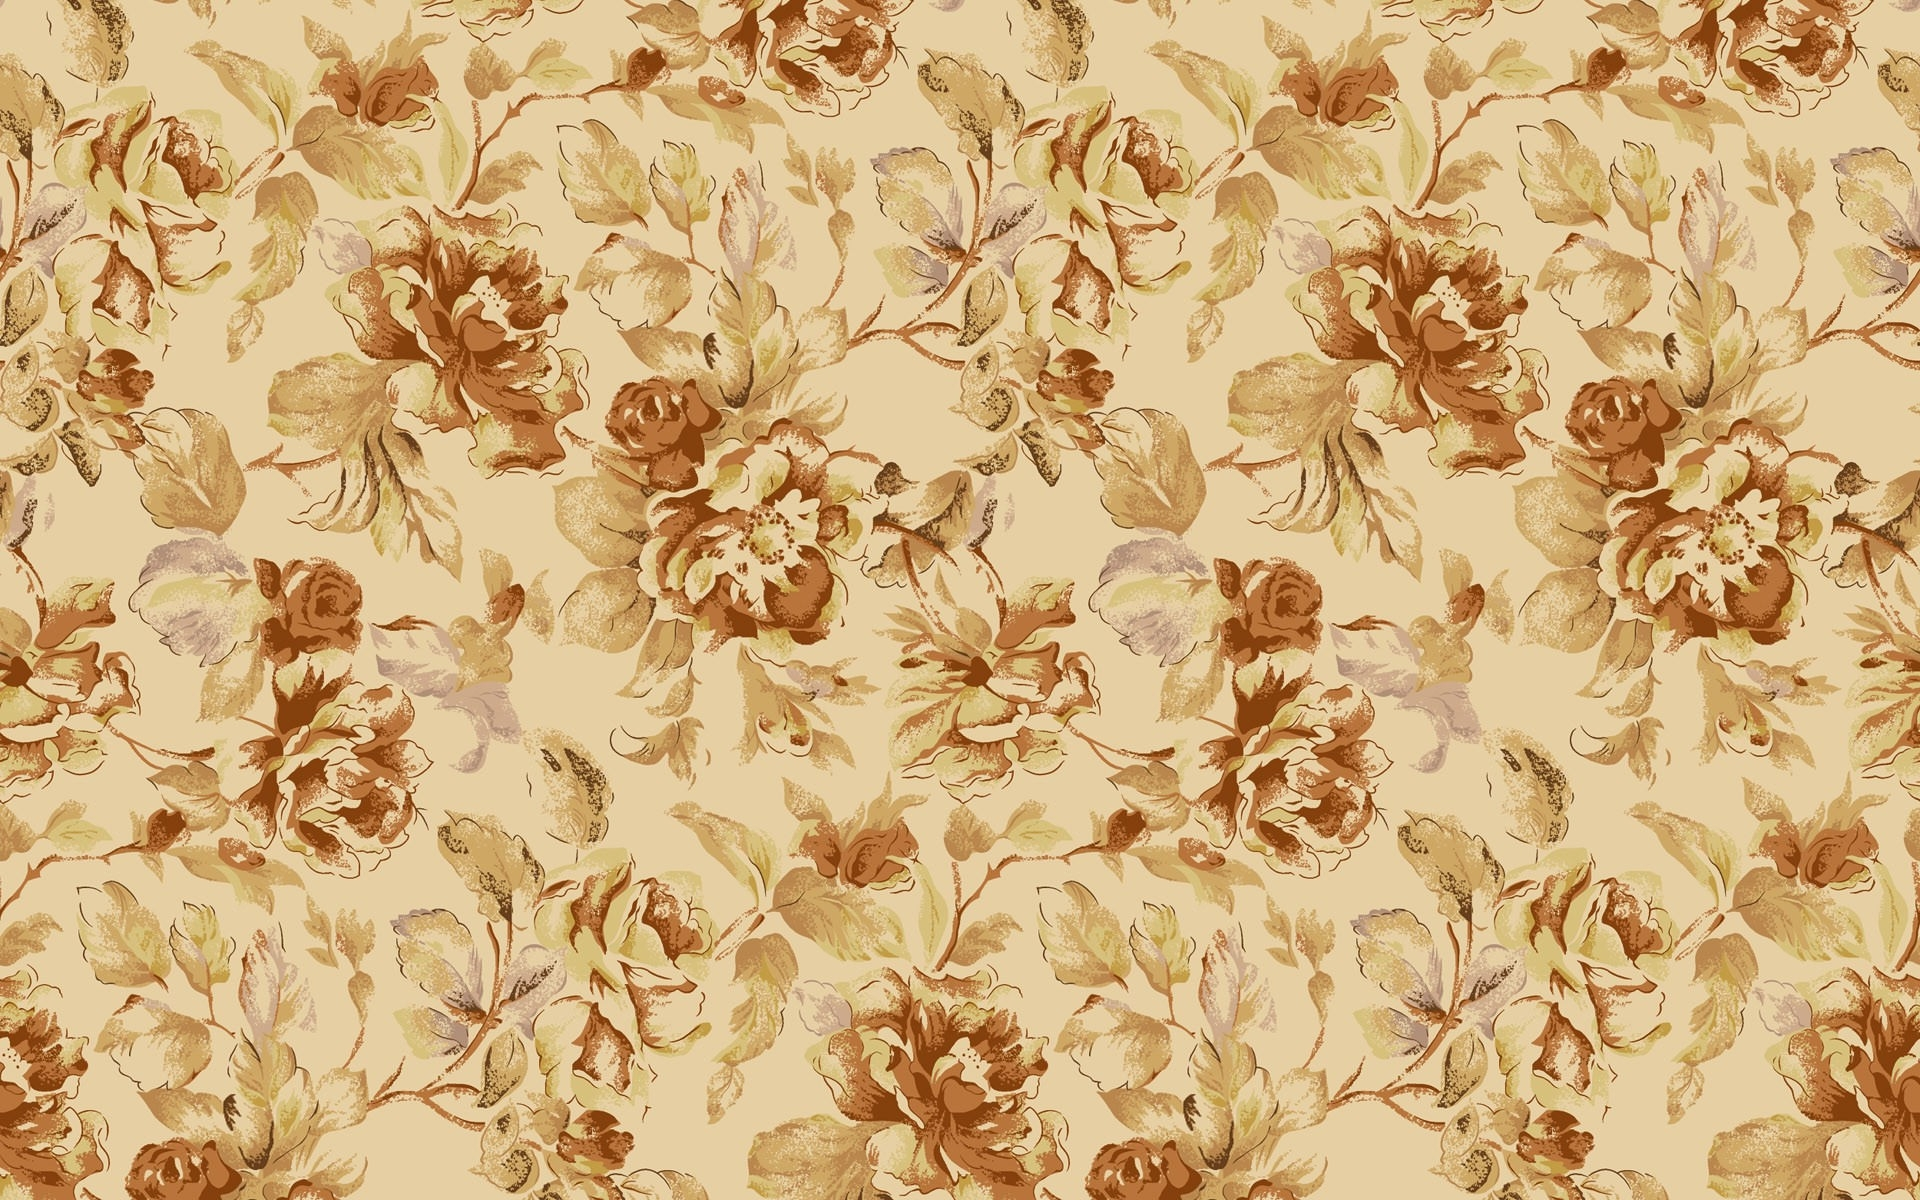 18 Vintage Floral Wallpapers Floral Patterns HD Wallpapers Download Free Images Wallpaper [1000image.com]